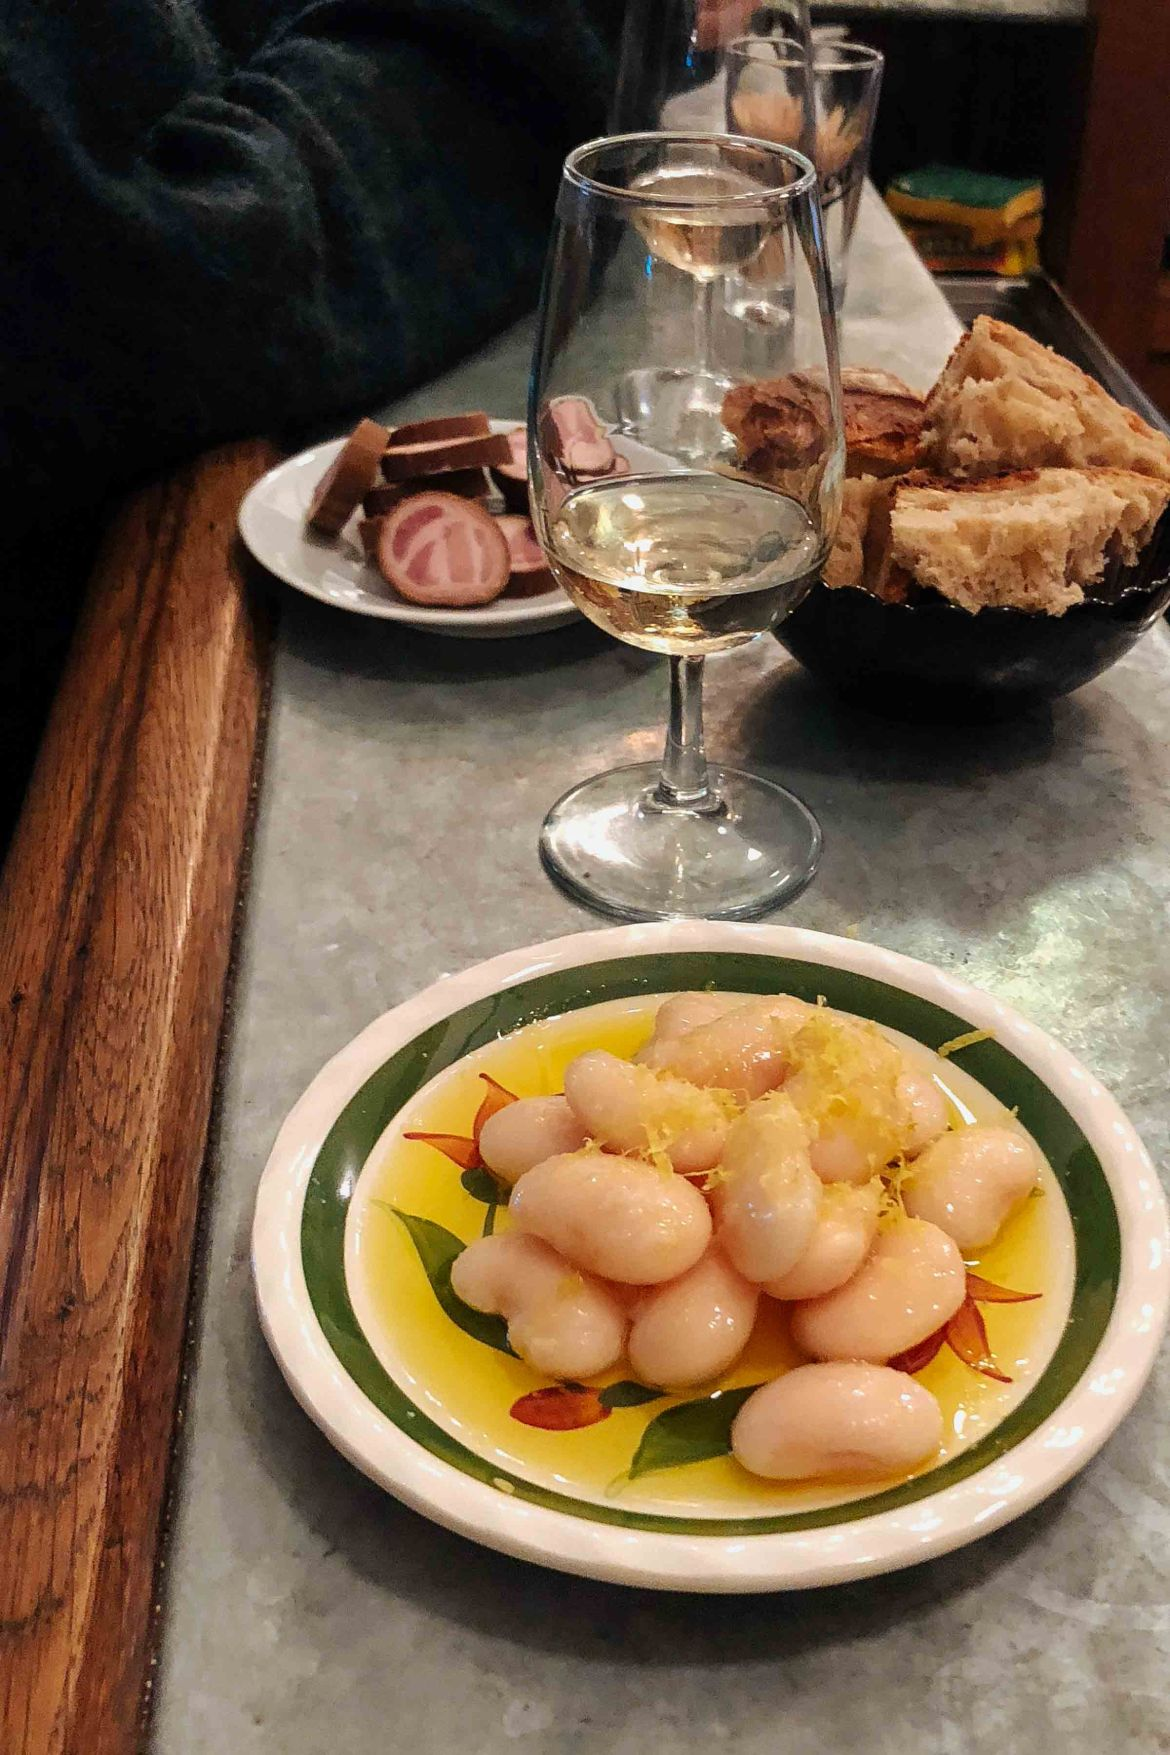 La Buvette wine bar in paris with their famous giant white beans in olive oil - photo by Kate Leahy